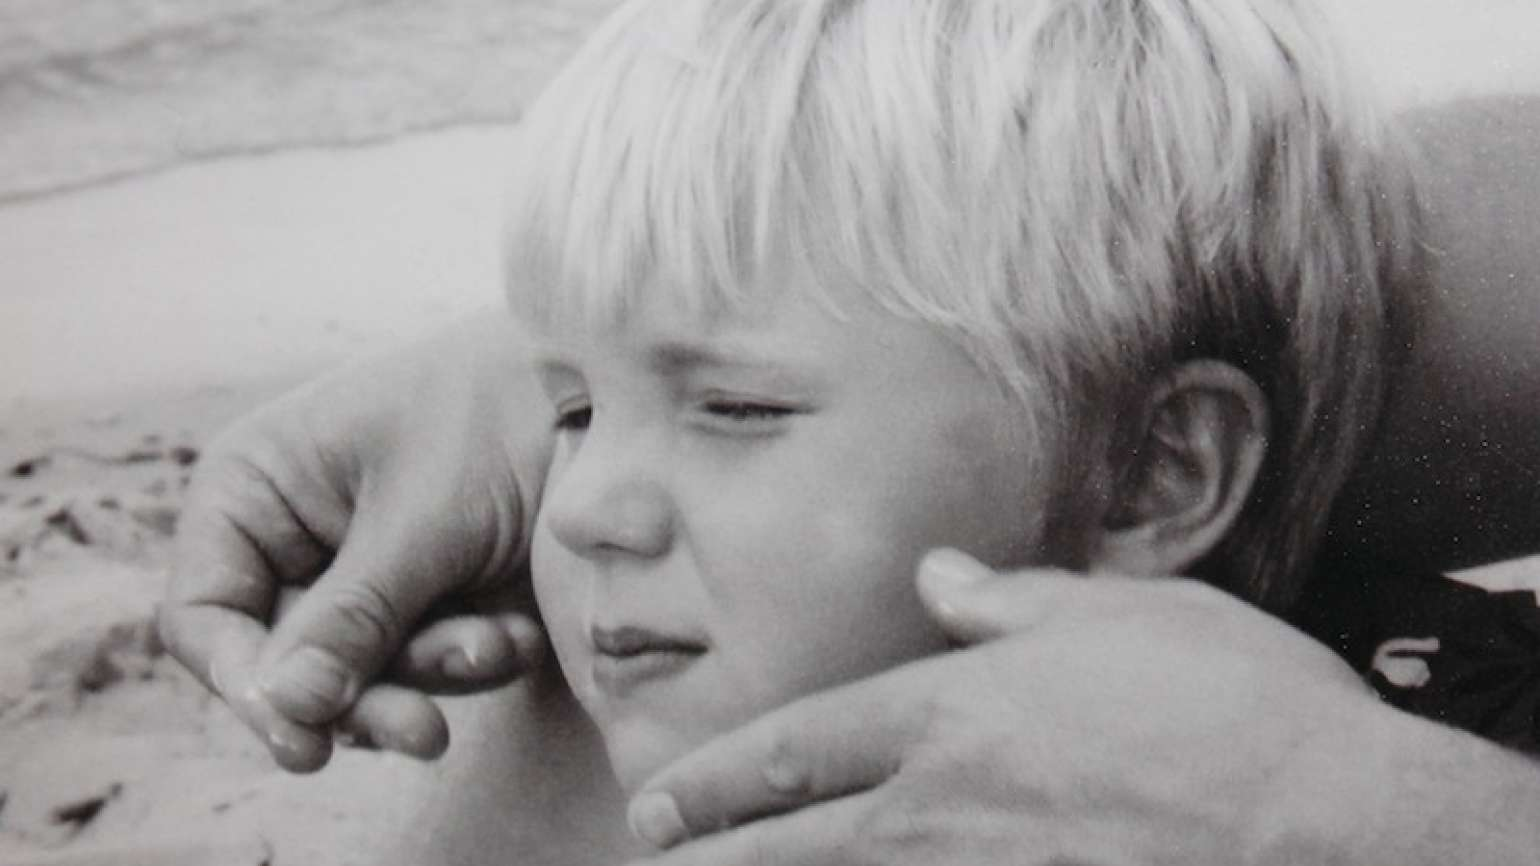 Shawnelle's son, Grant, as a young boy, being caressed by his father.